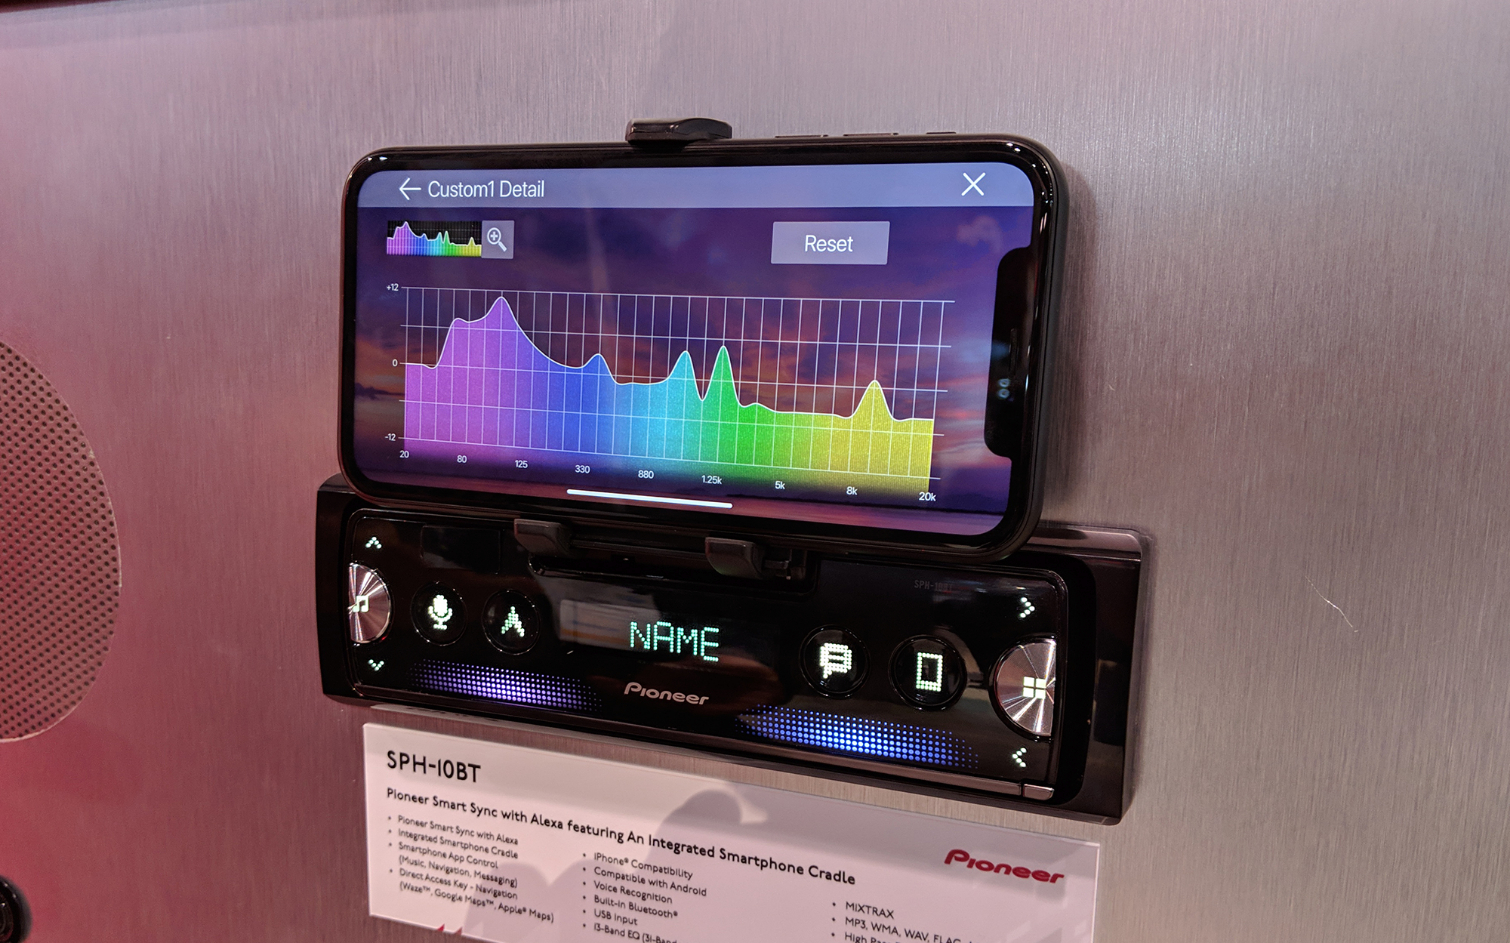 Pioneer's New Car Stereo Turns Your Phone Into an